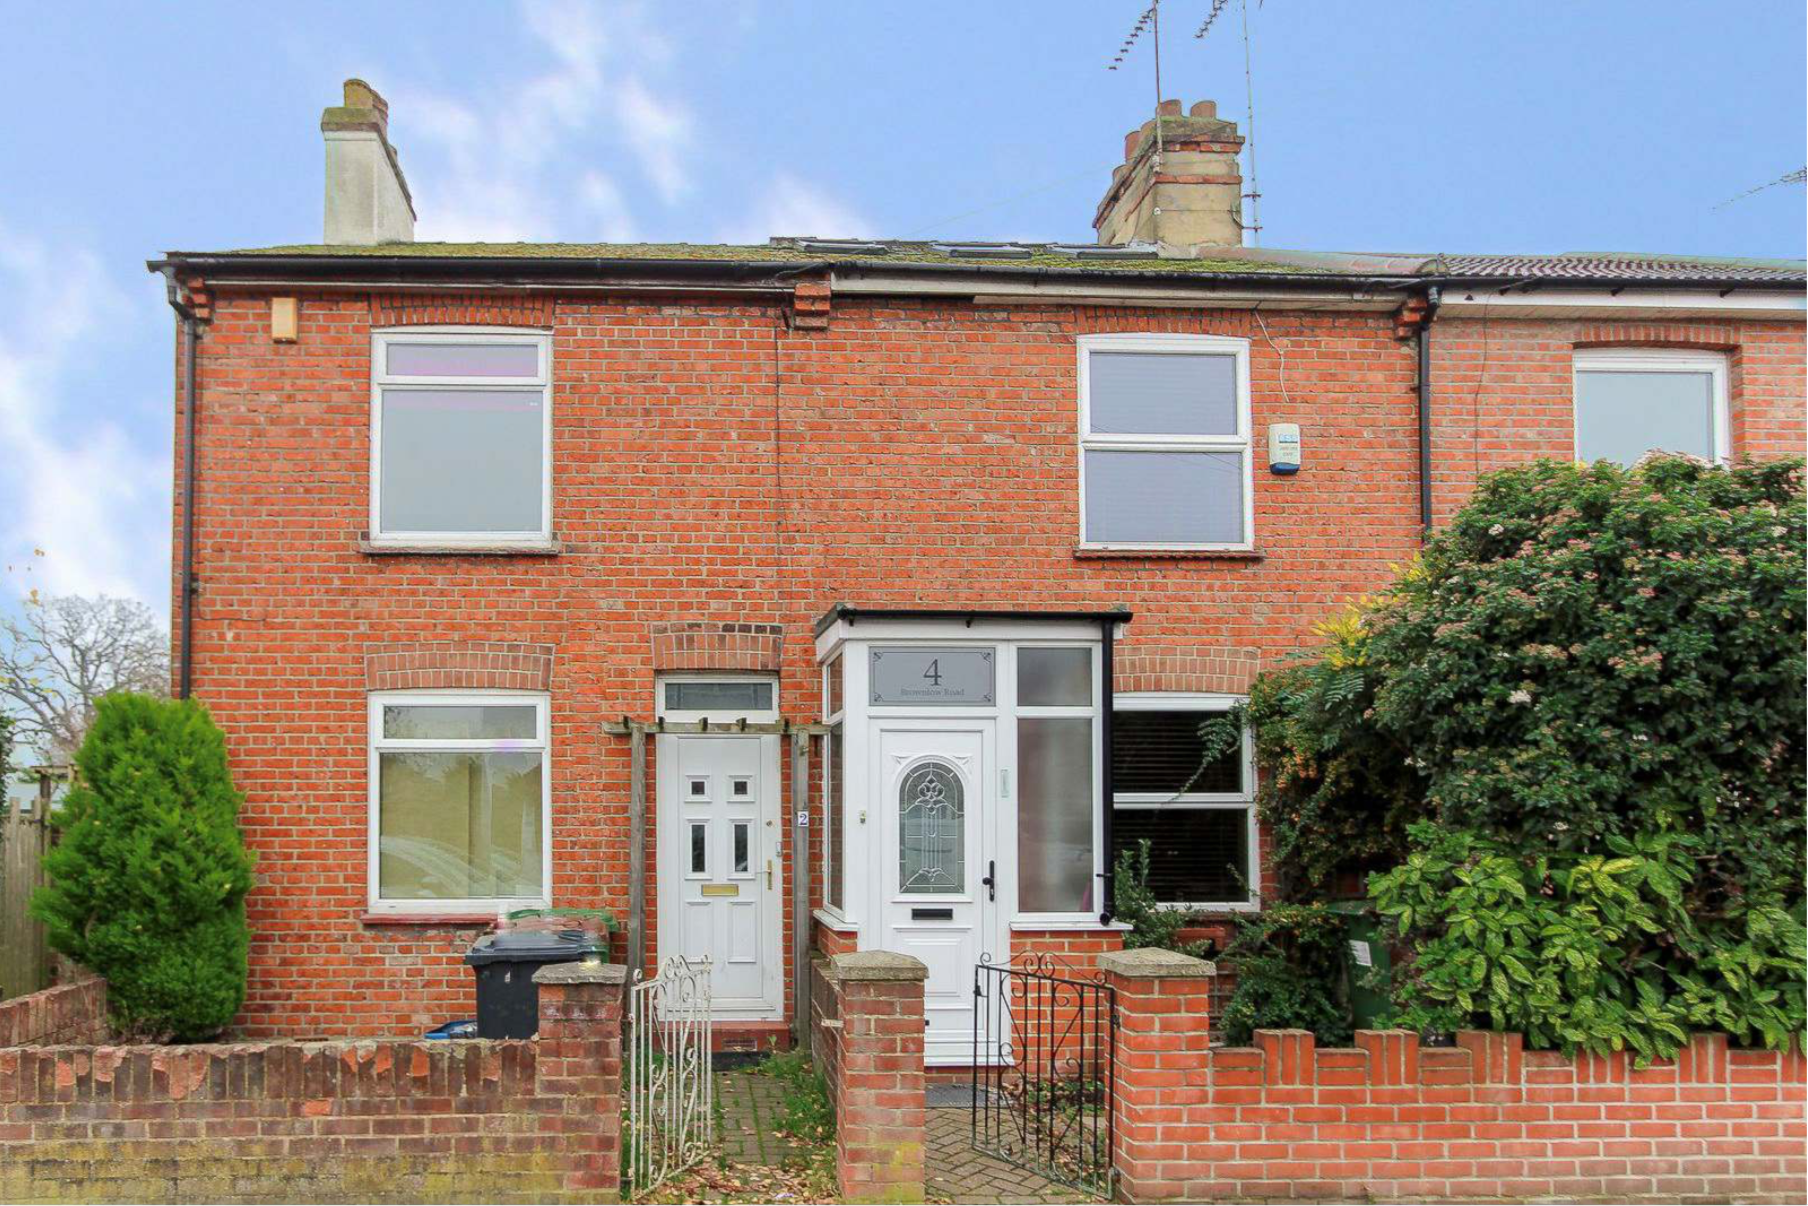 Two Bedroom two bathroom end of terrace house for rent on Brownlow Road, WD6